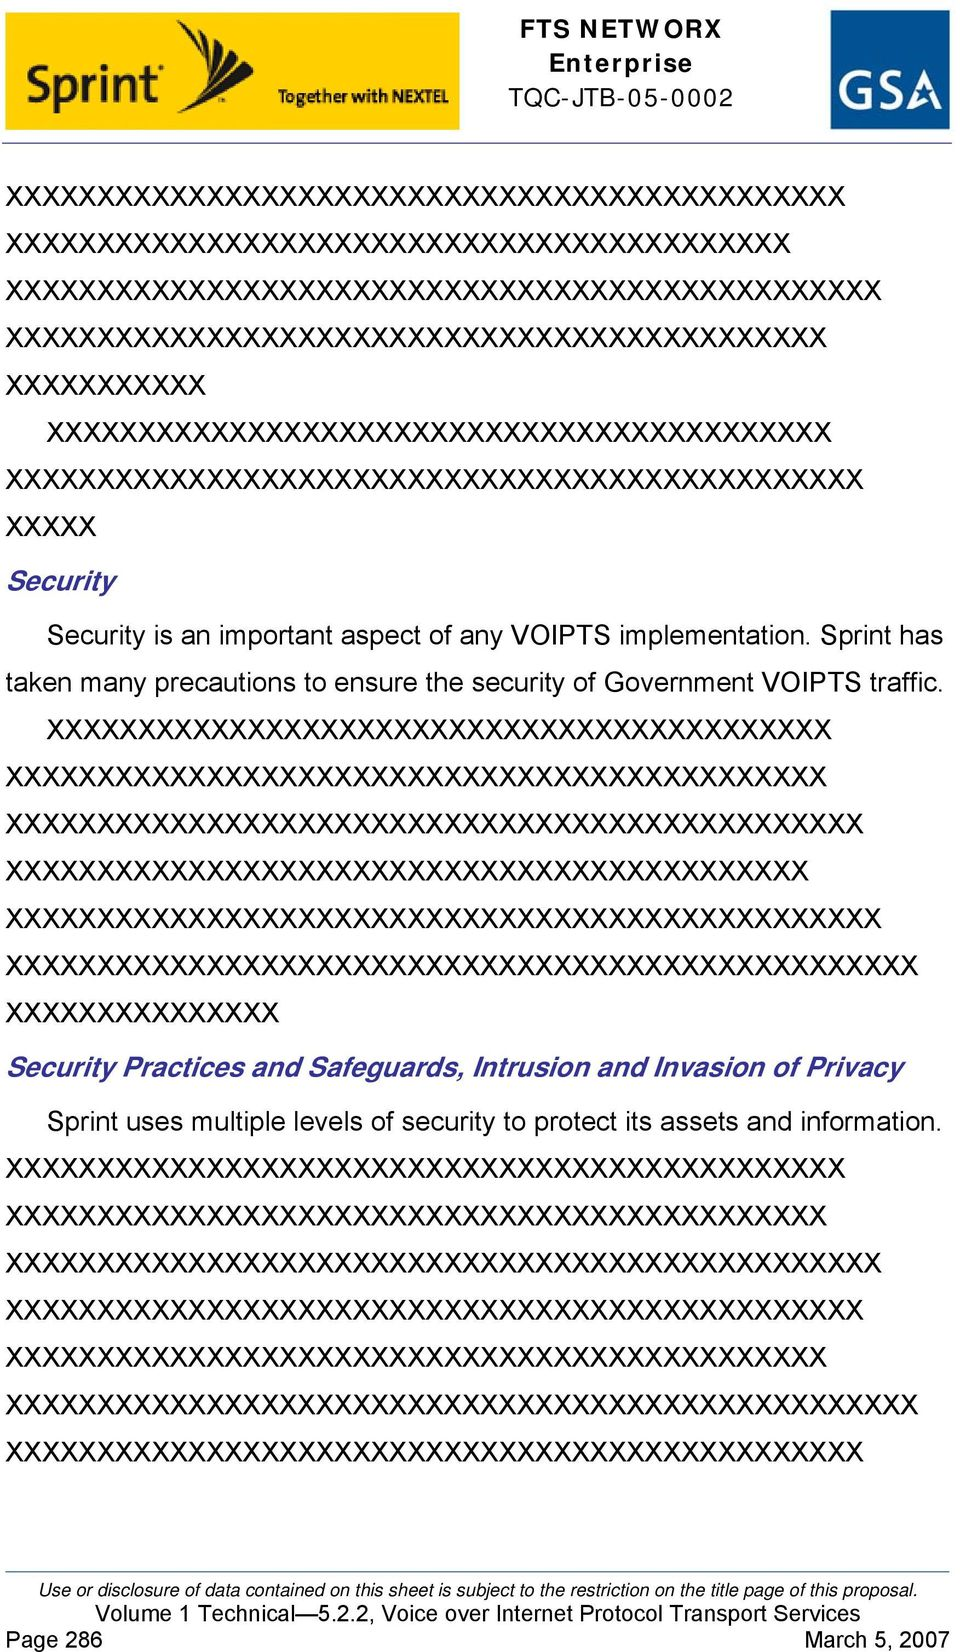 X X XX XXXX XXXXXXXXXXXXXXX Security Practices and Safeguards, Intrusion and Invasion of Privacy